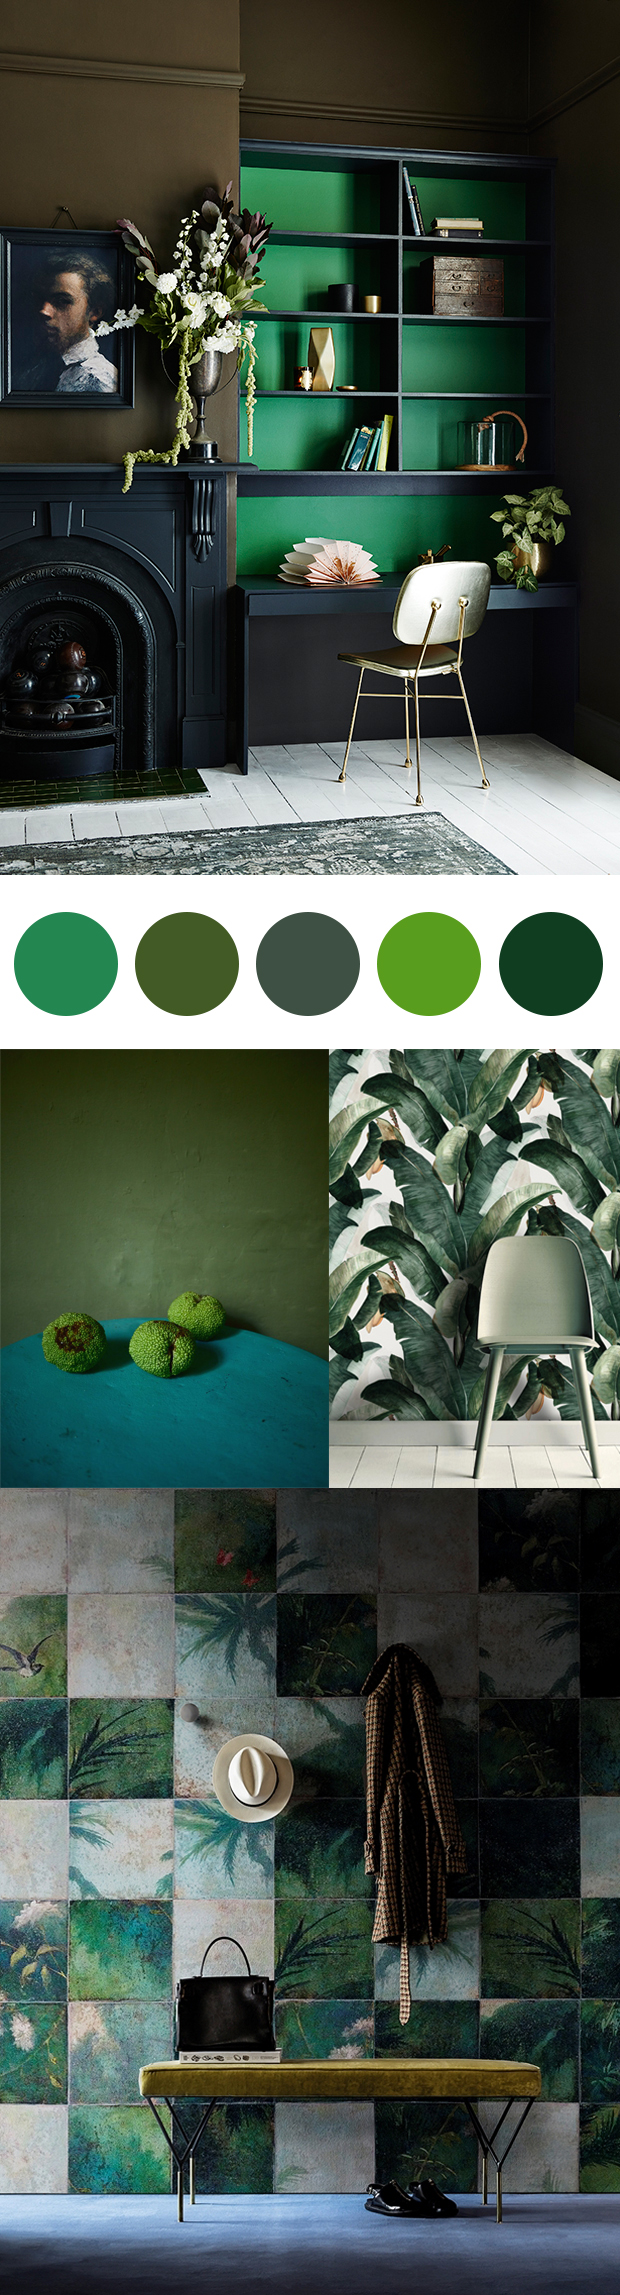 Inspired by Pantone Colour of the Year: Greenery.